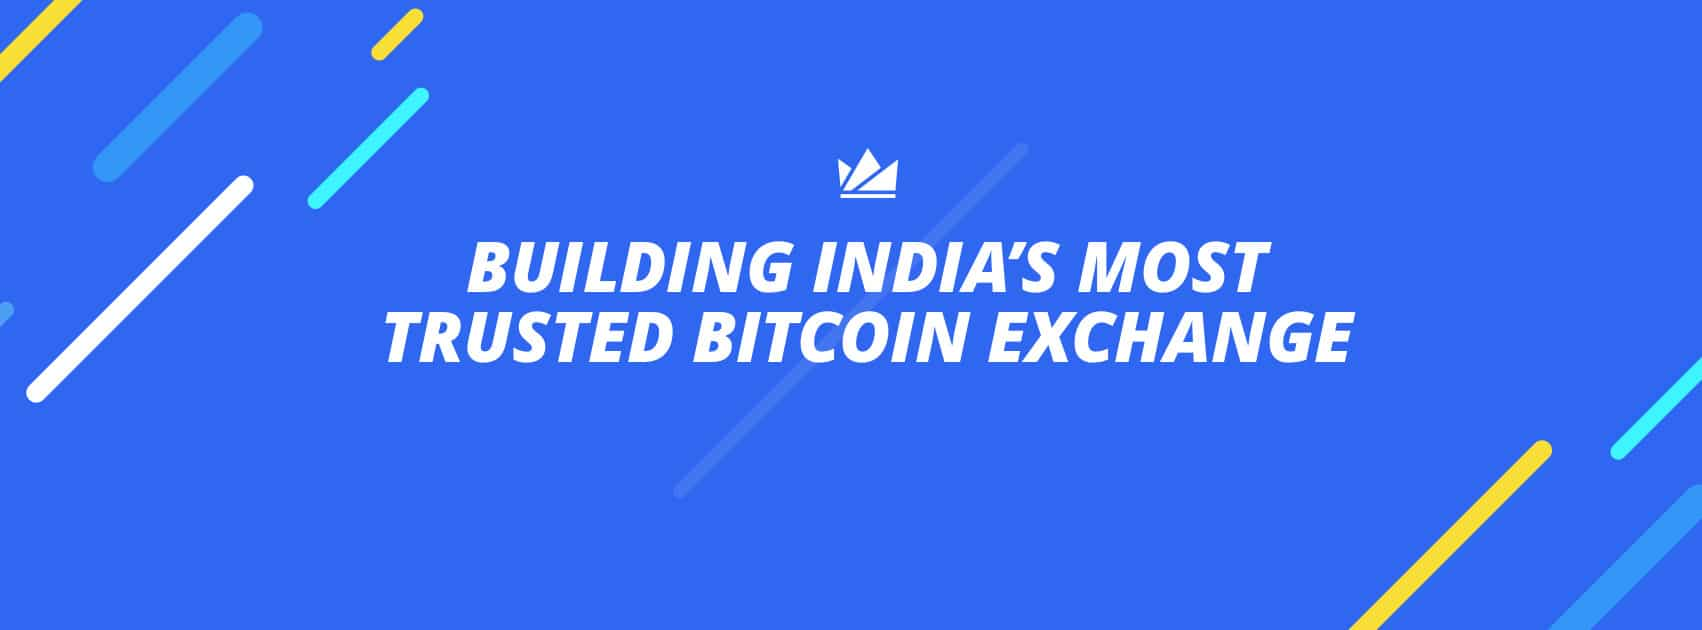 p2p cryptocurrency exchange in india